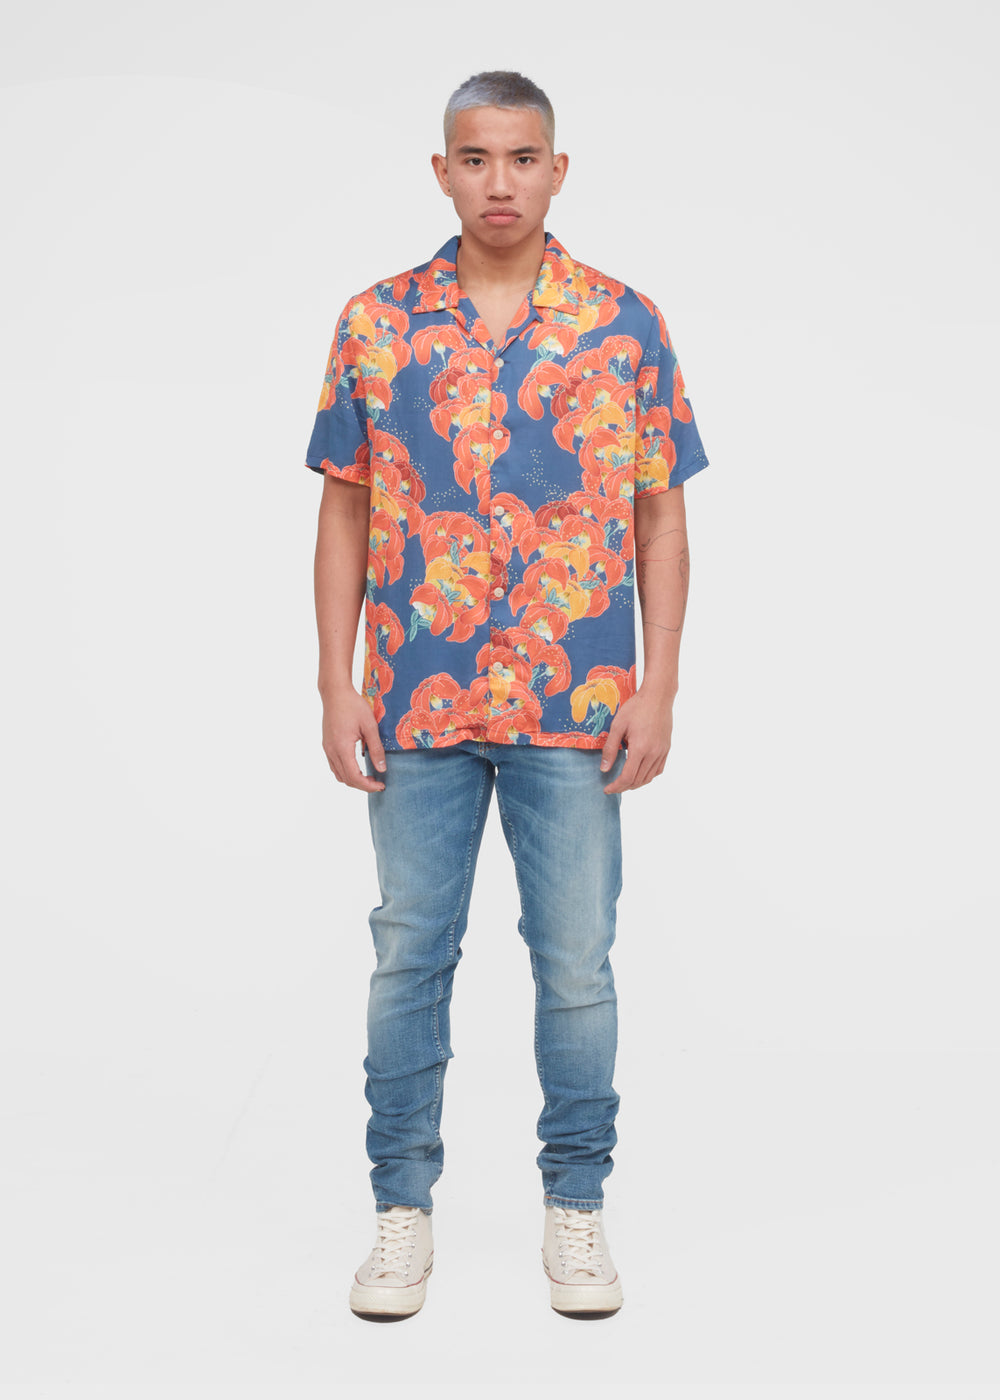 nudie-jeans-co-arvid-flower-shirt-140636-mlti-mlti-4